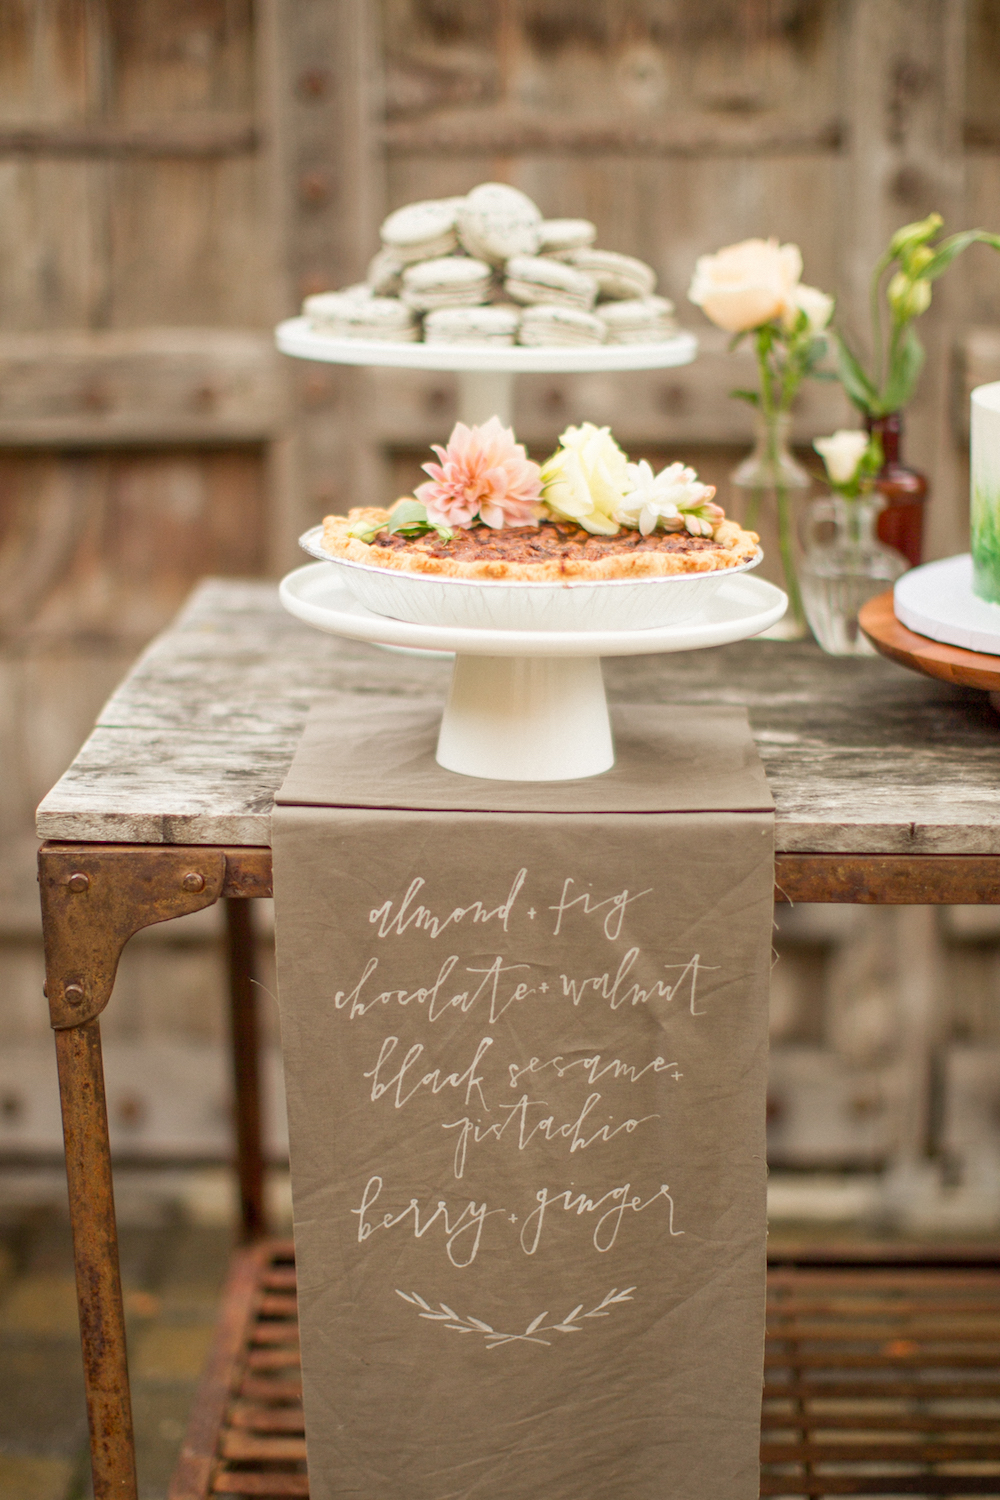 Cozy, Ethereal Wedding Inspiration at The General's Daughter, generals daughter wedding inspiration, wedding calligraphy